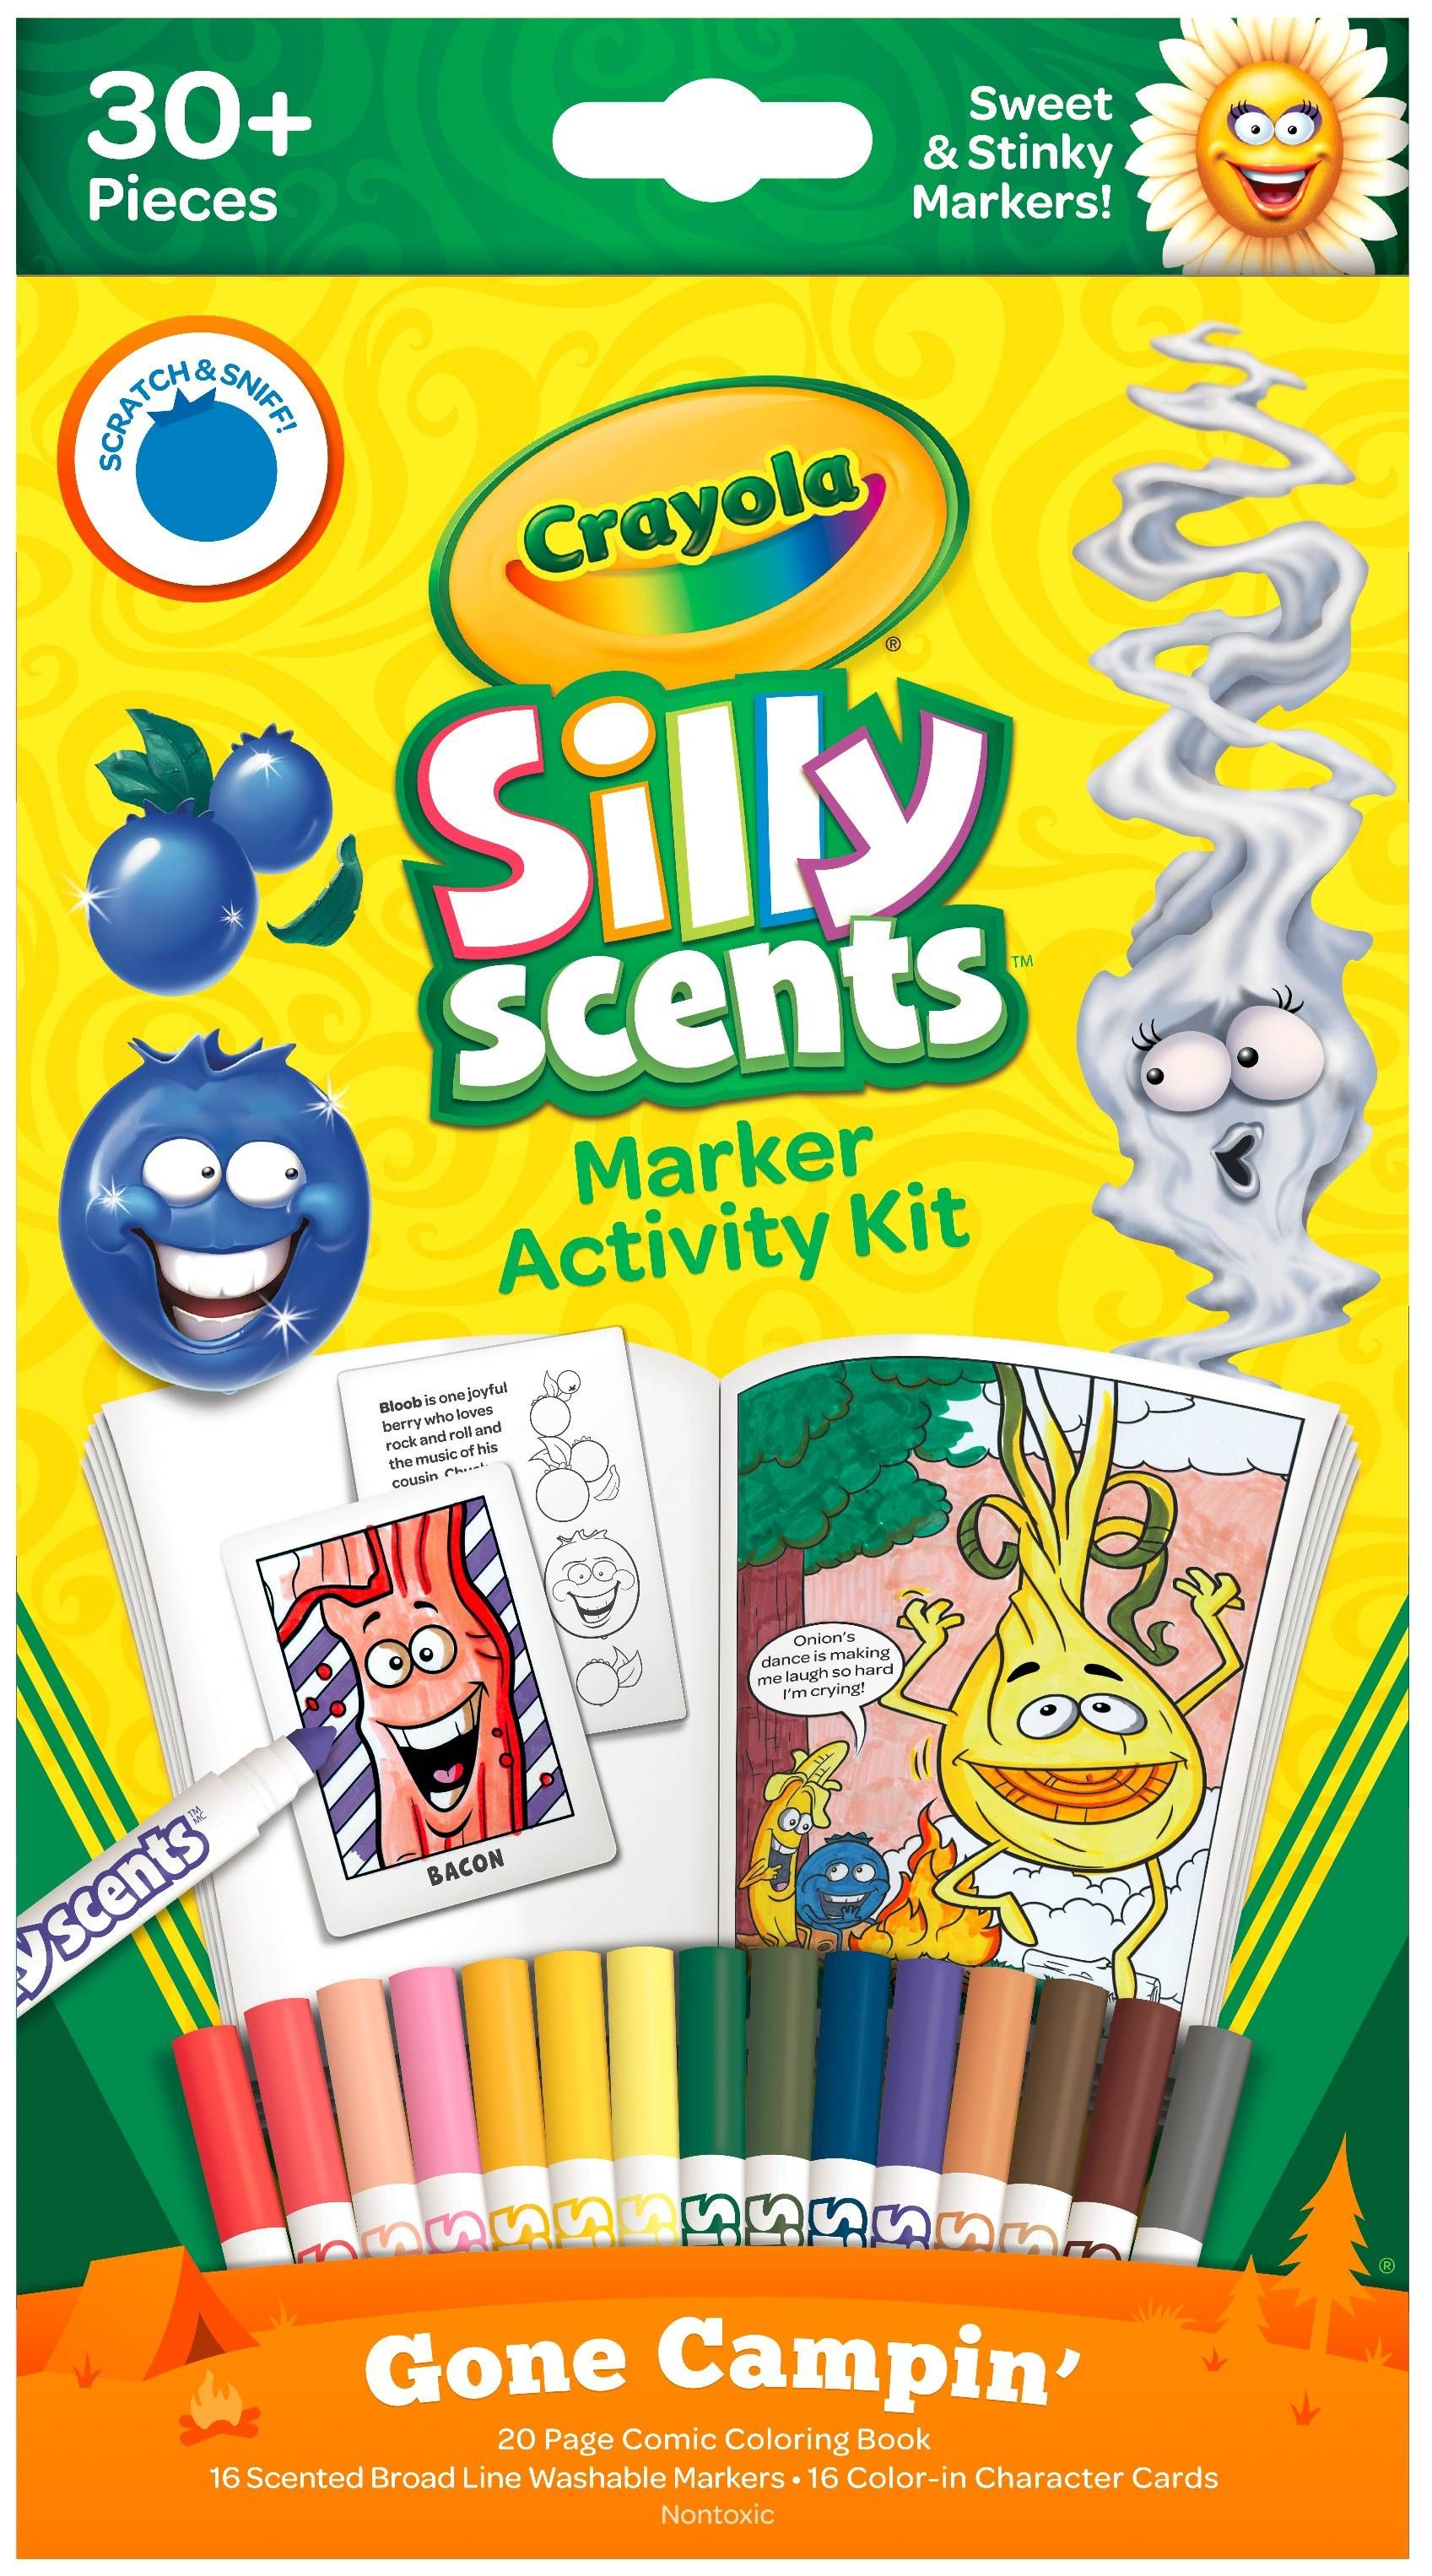 Crayola silly scents marker activity set gone campin